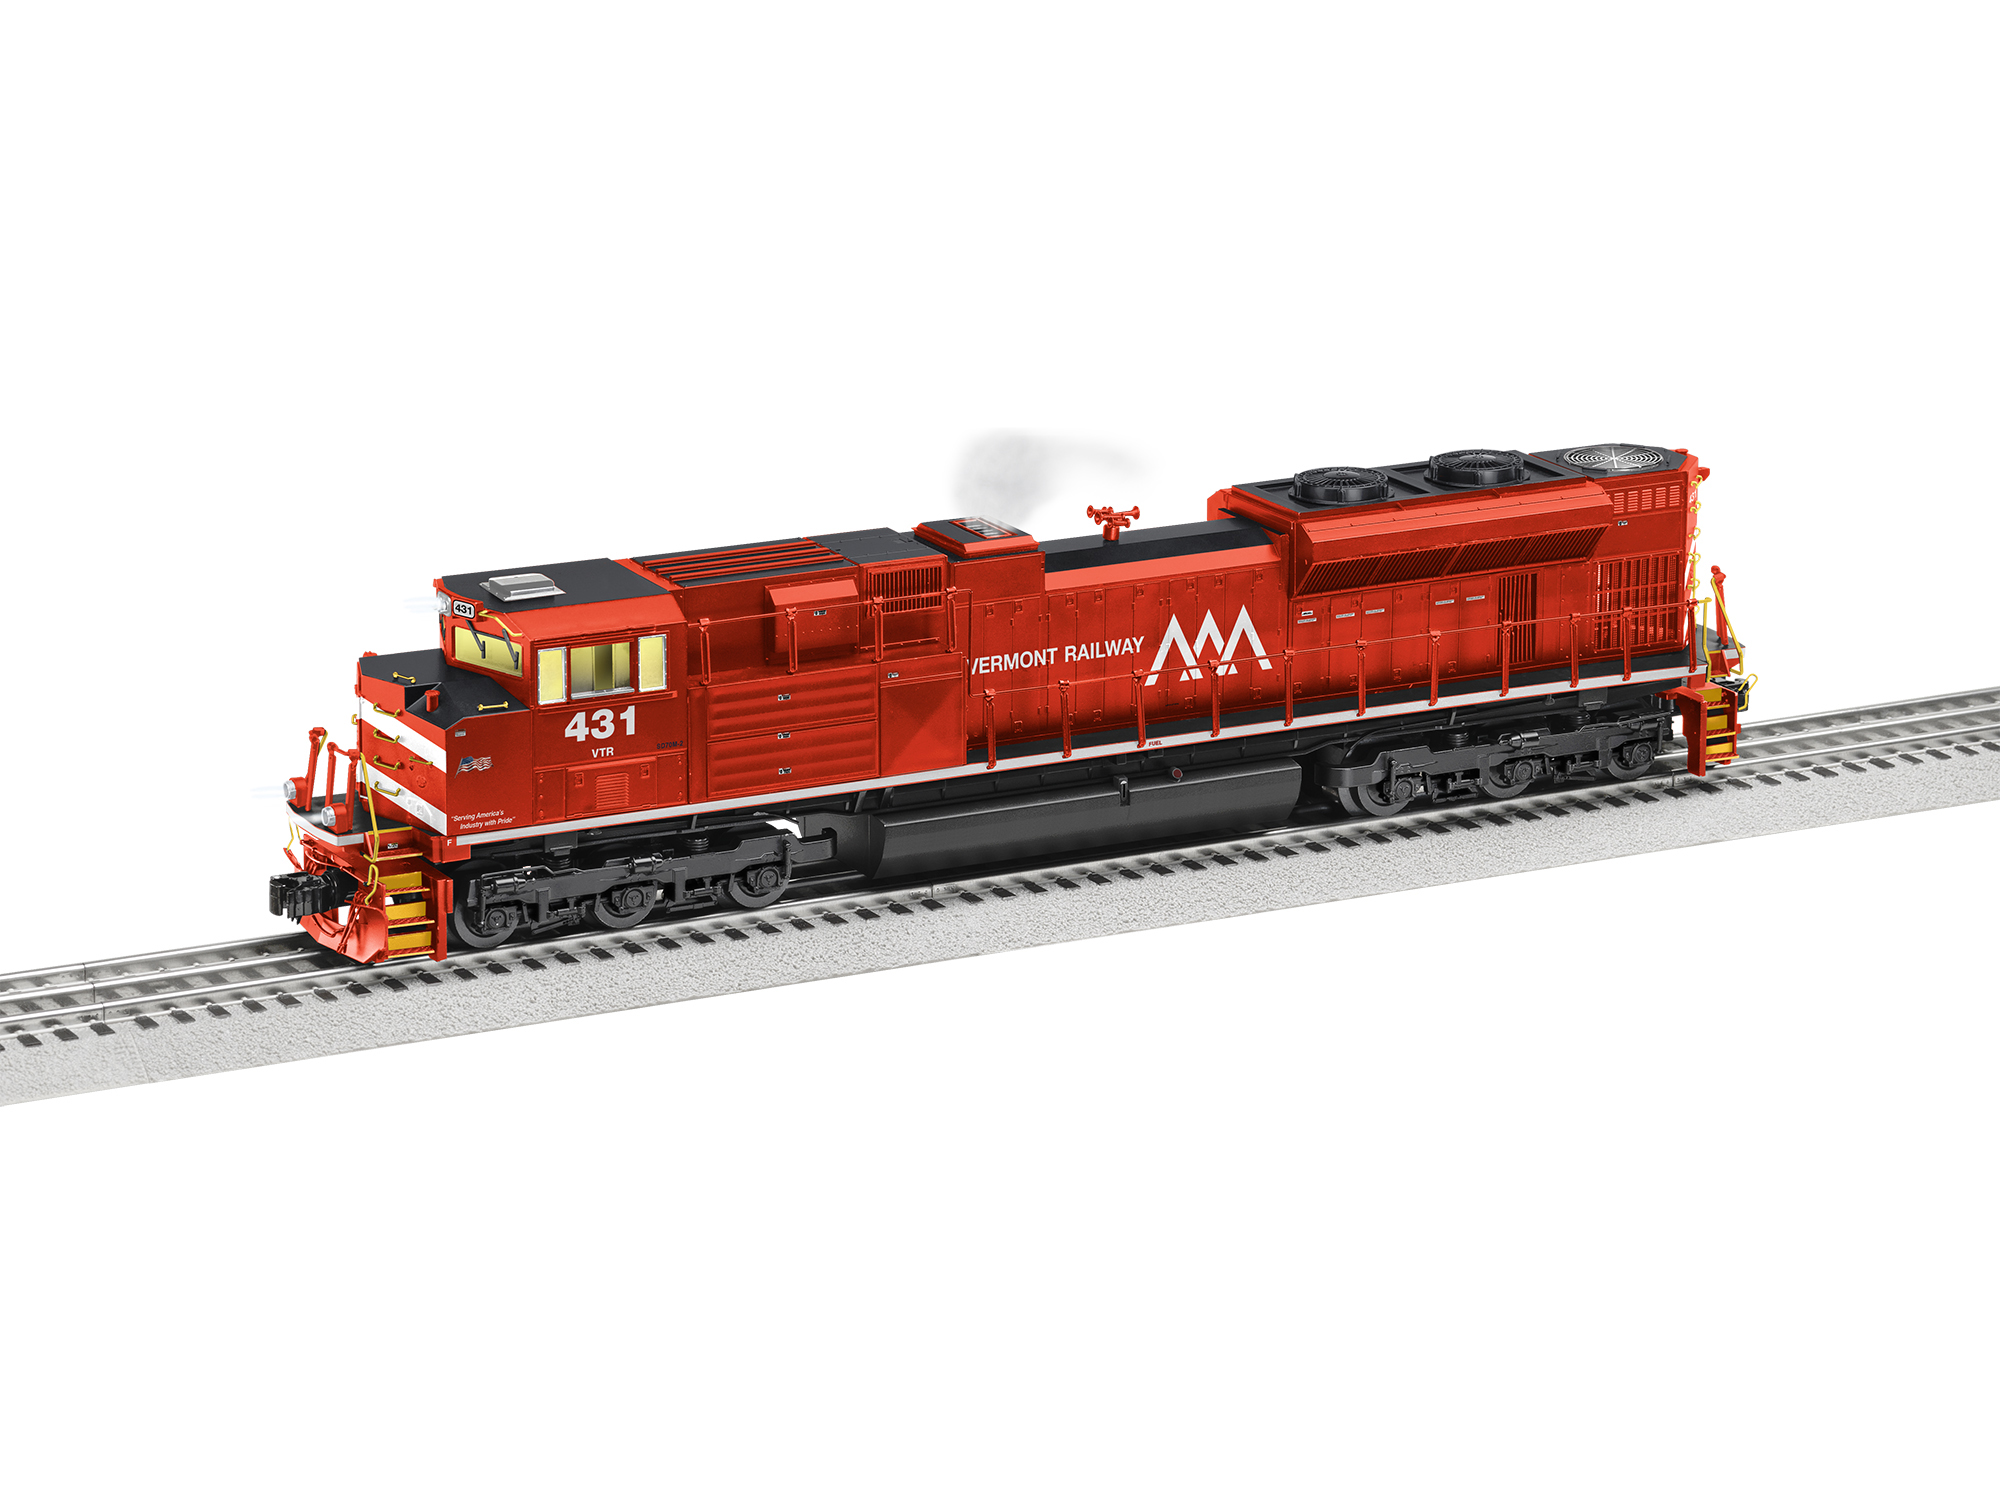 Lionel 2033231 O EMD SD70M-2 3-Rail Legacy Sound and Control Vermont Railway 431 434-2033231